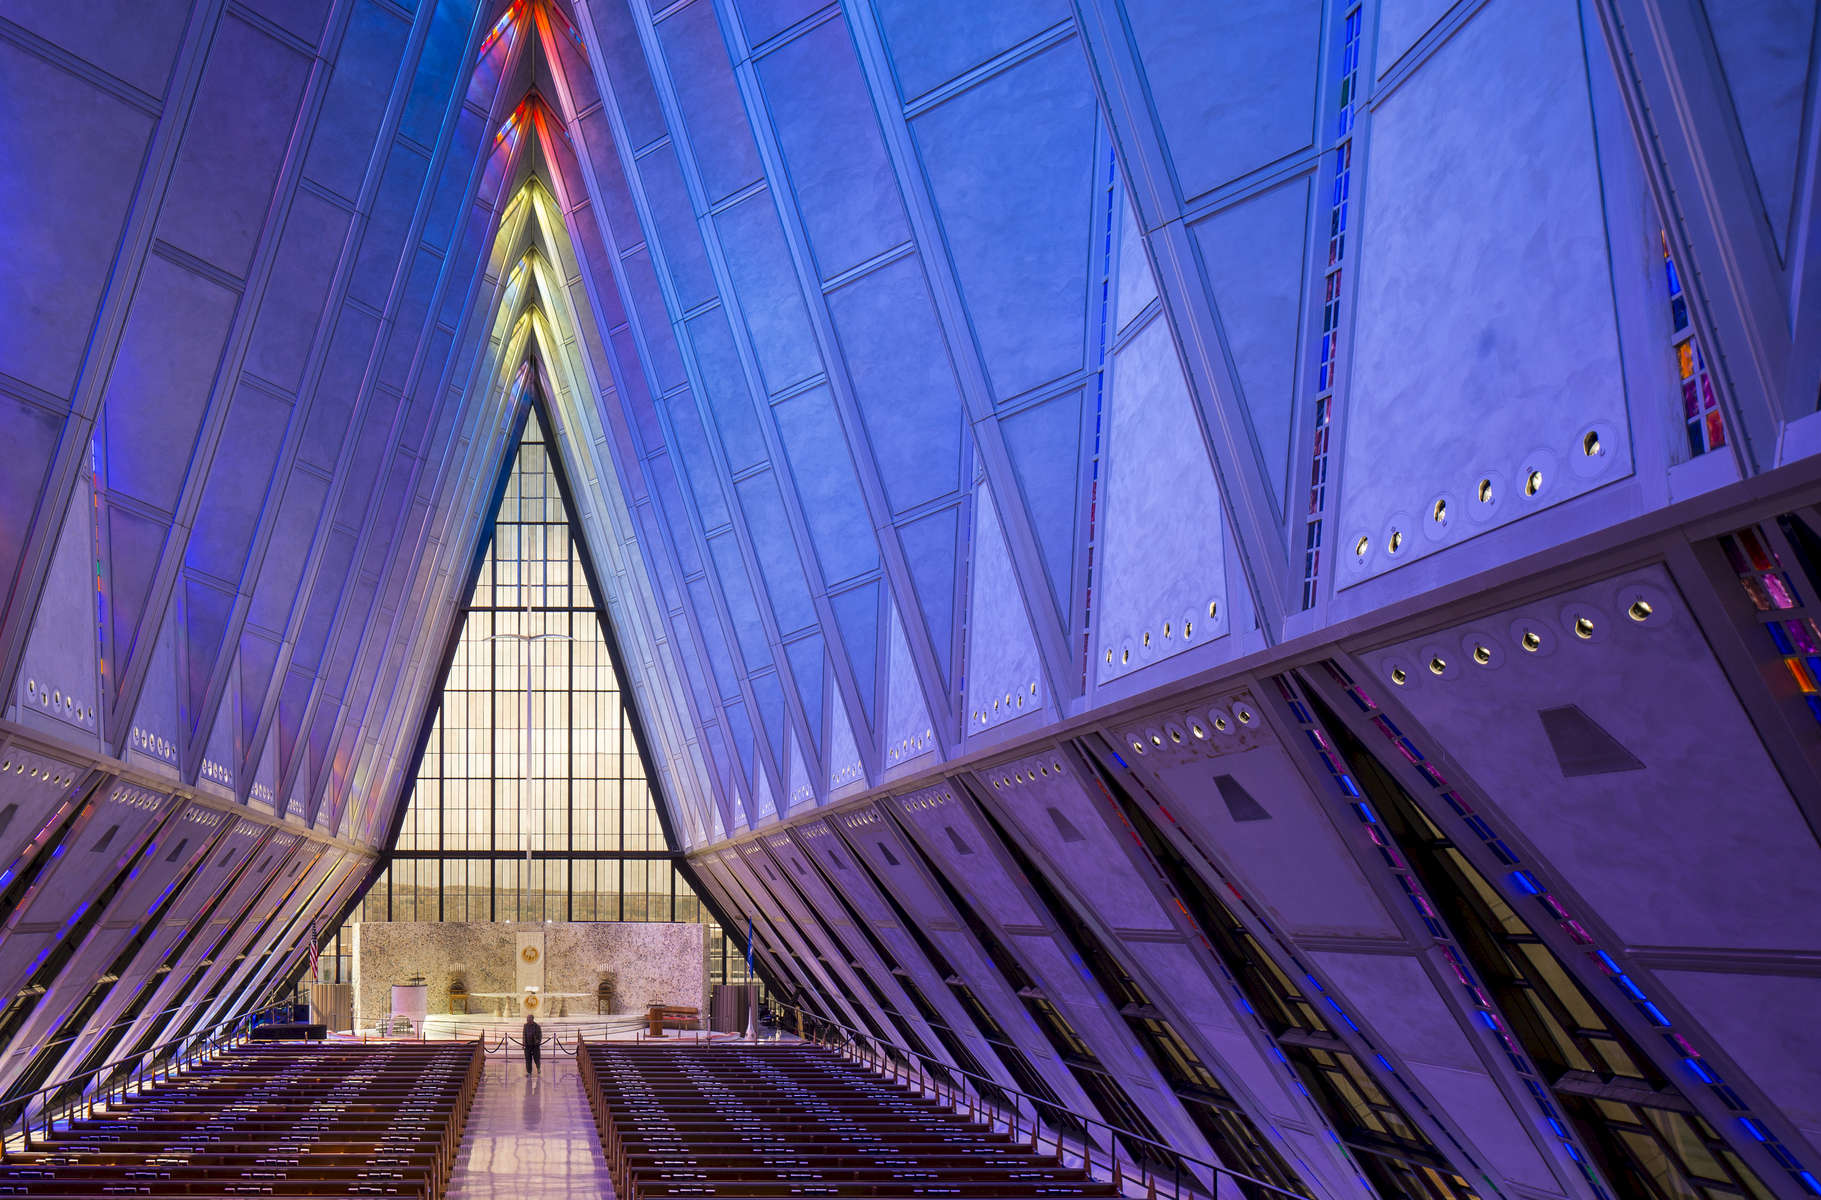 USAFA Cadet Chapel Rennovation